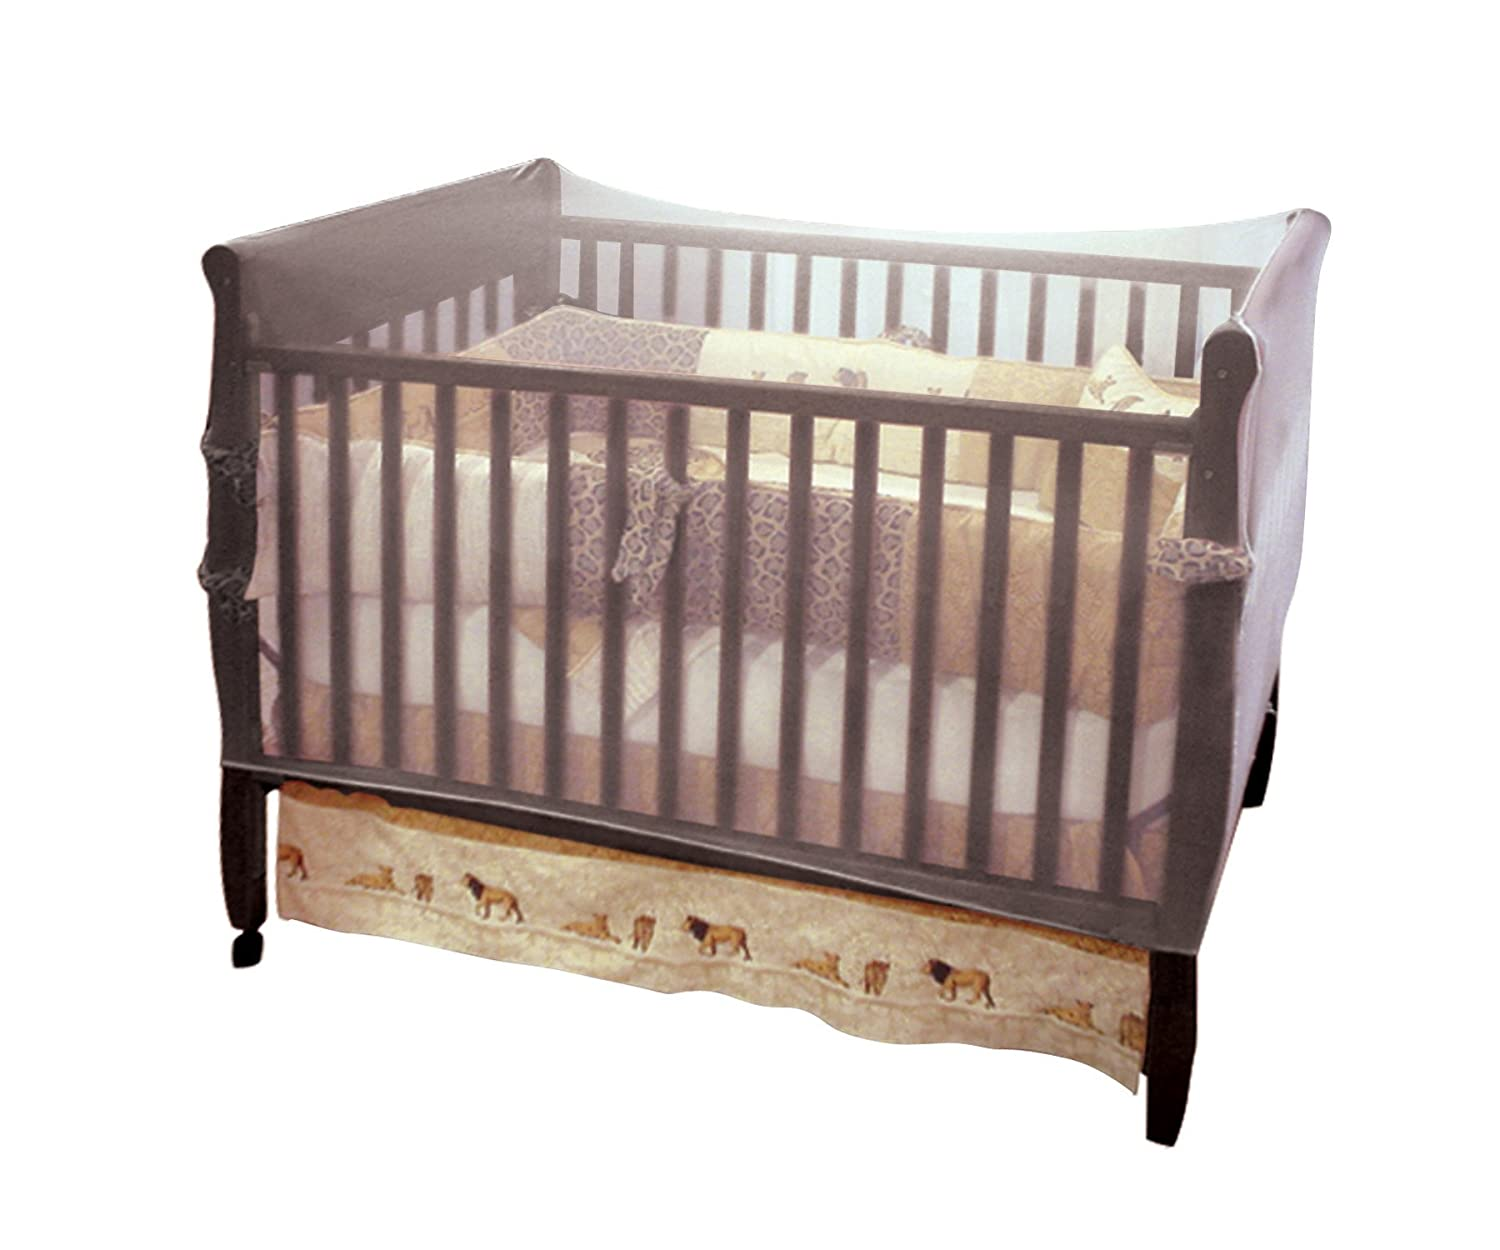 crib baby firm pics mattress size cribs of awesome inspirational full organic elegant dimensions